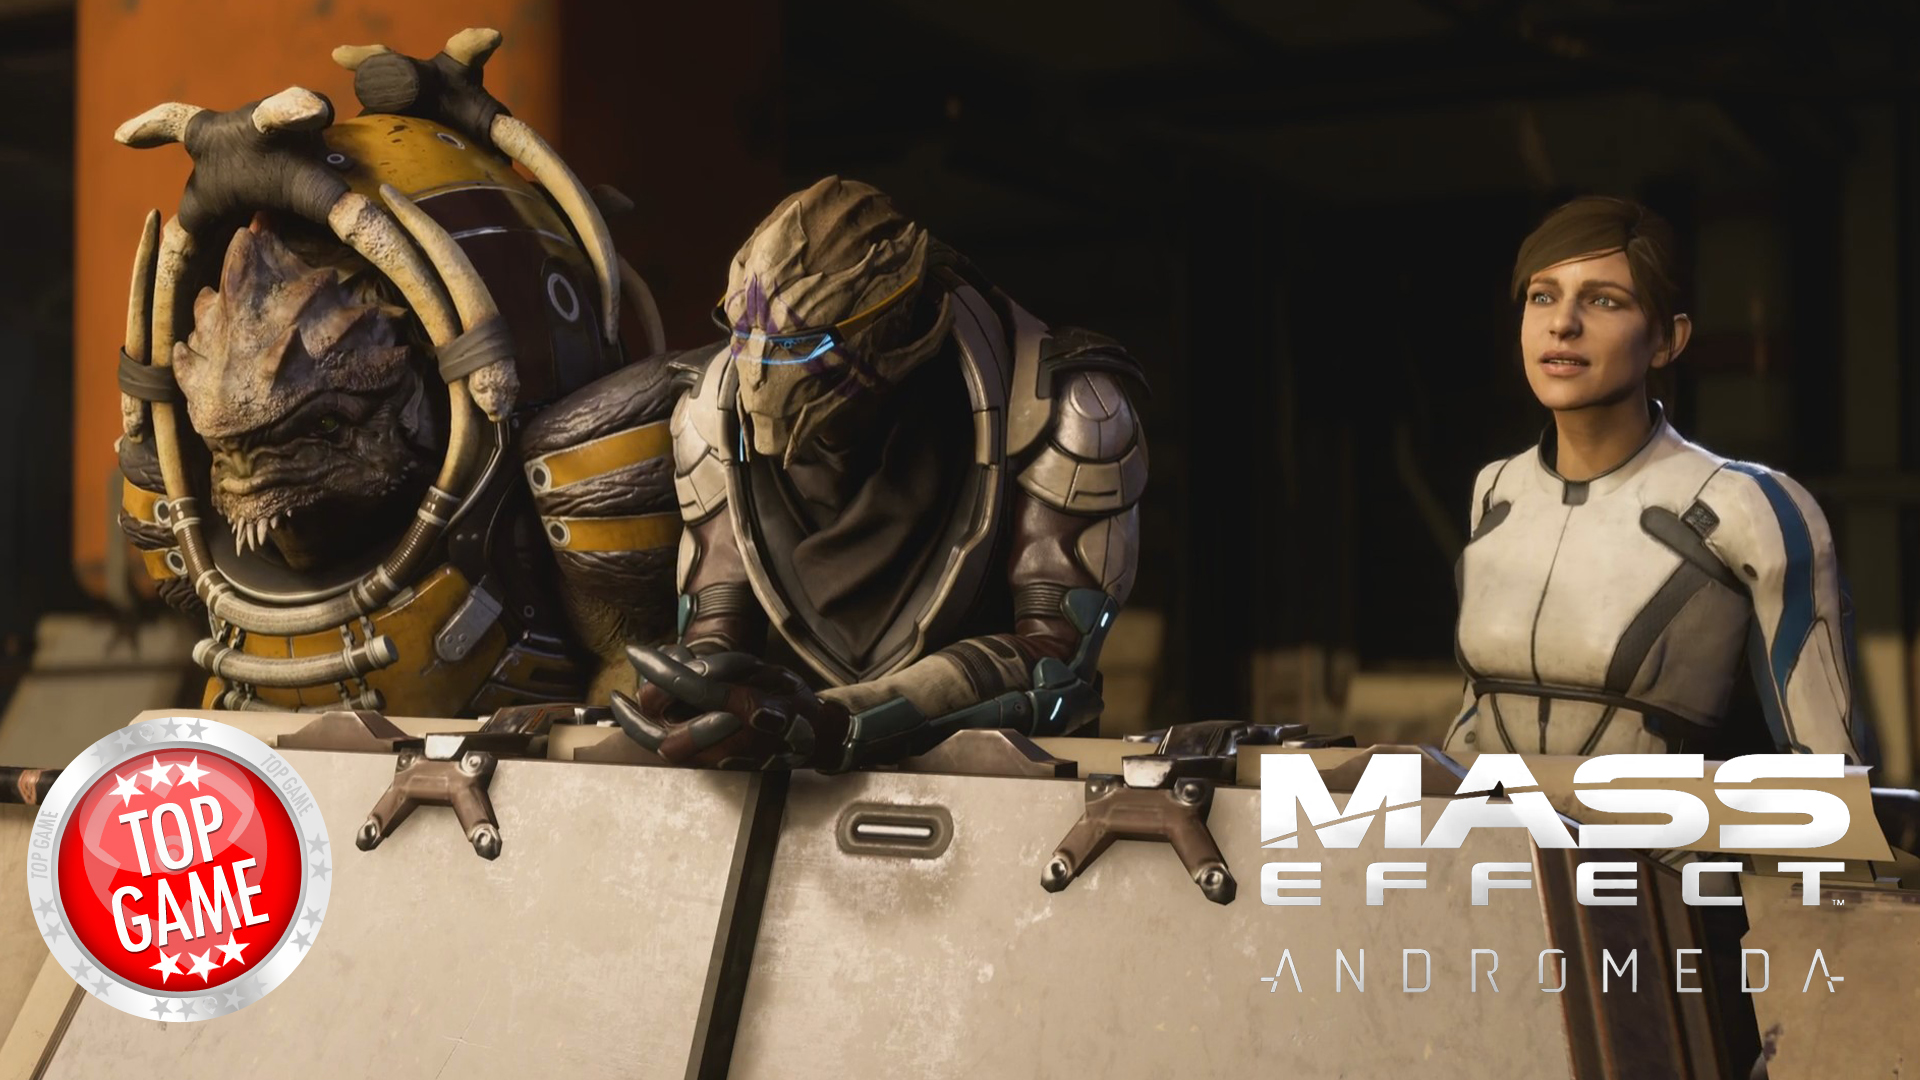 Mass Effect Andromeda planned Cover